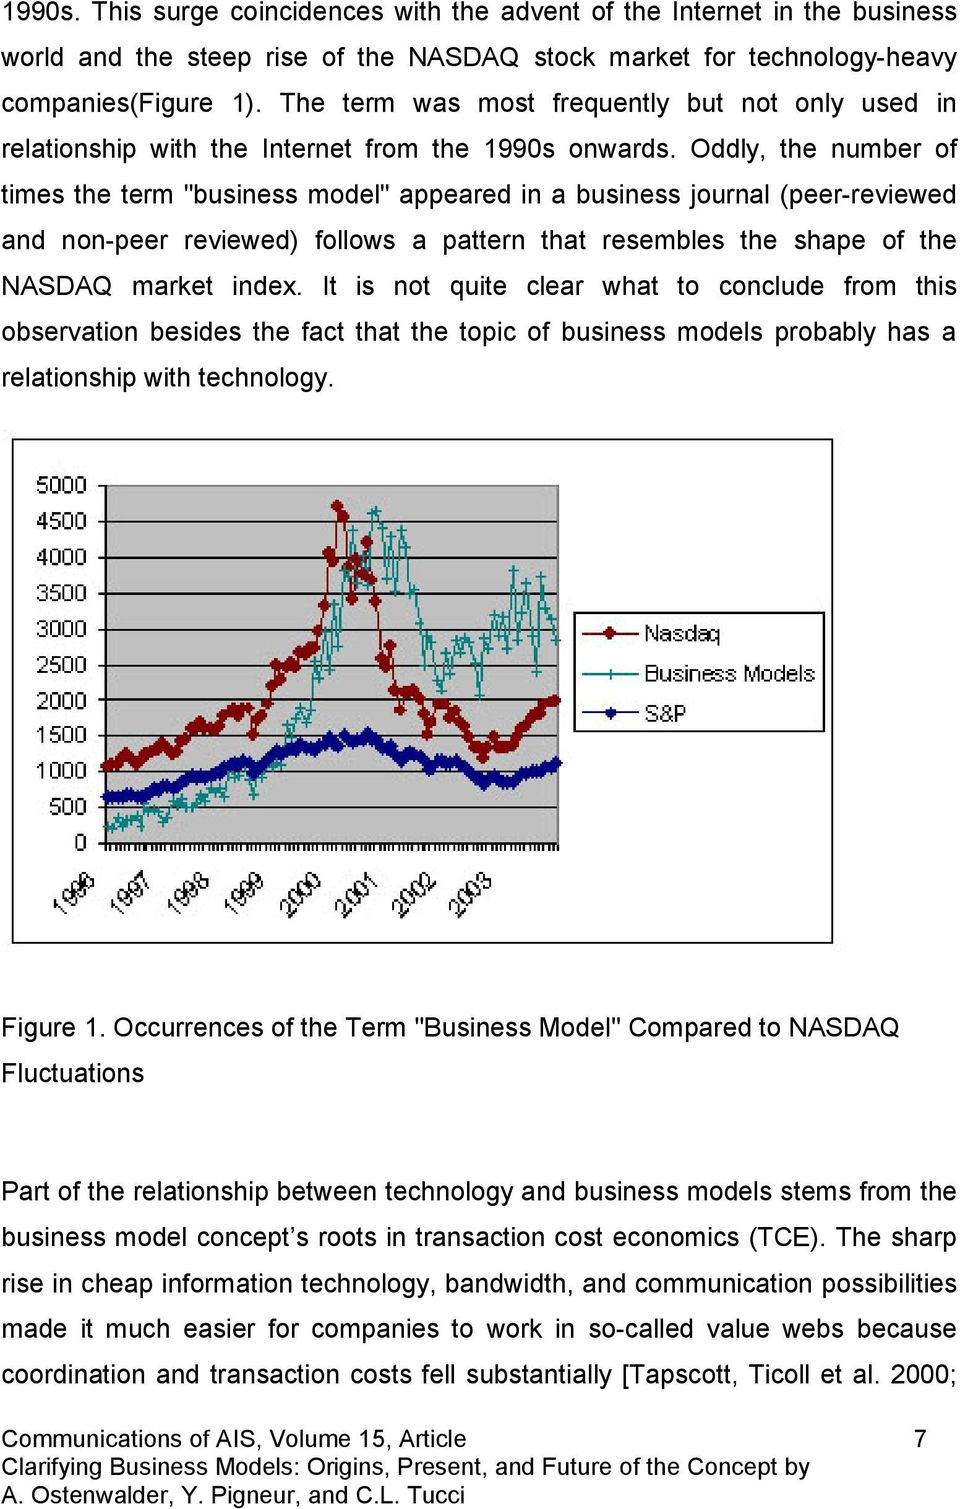 "Oddly, the number of times the term ""business model"" appeared in a business journal (peer-reviewed and non-peer reviewed) follows a pattern that resembles the shape of the NASDAQ market index."